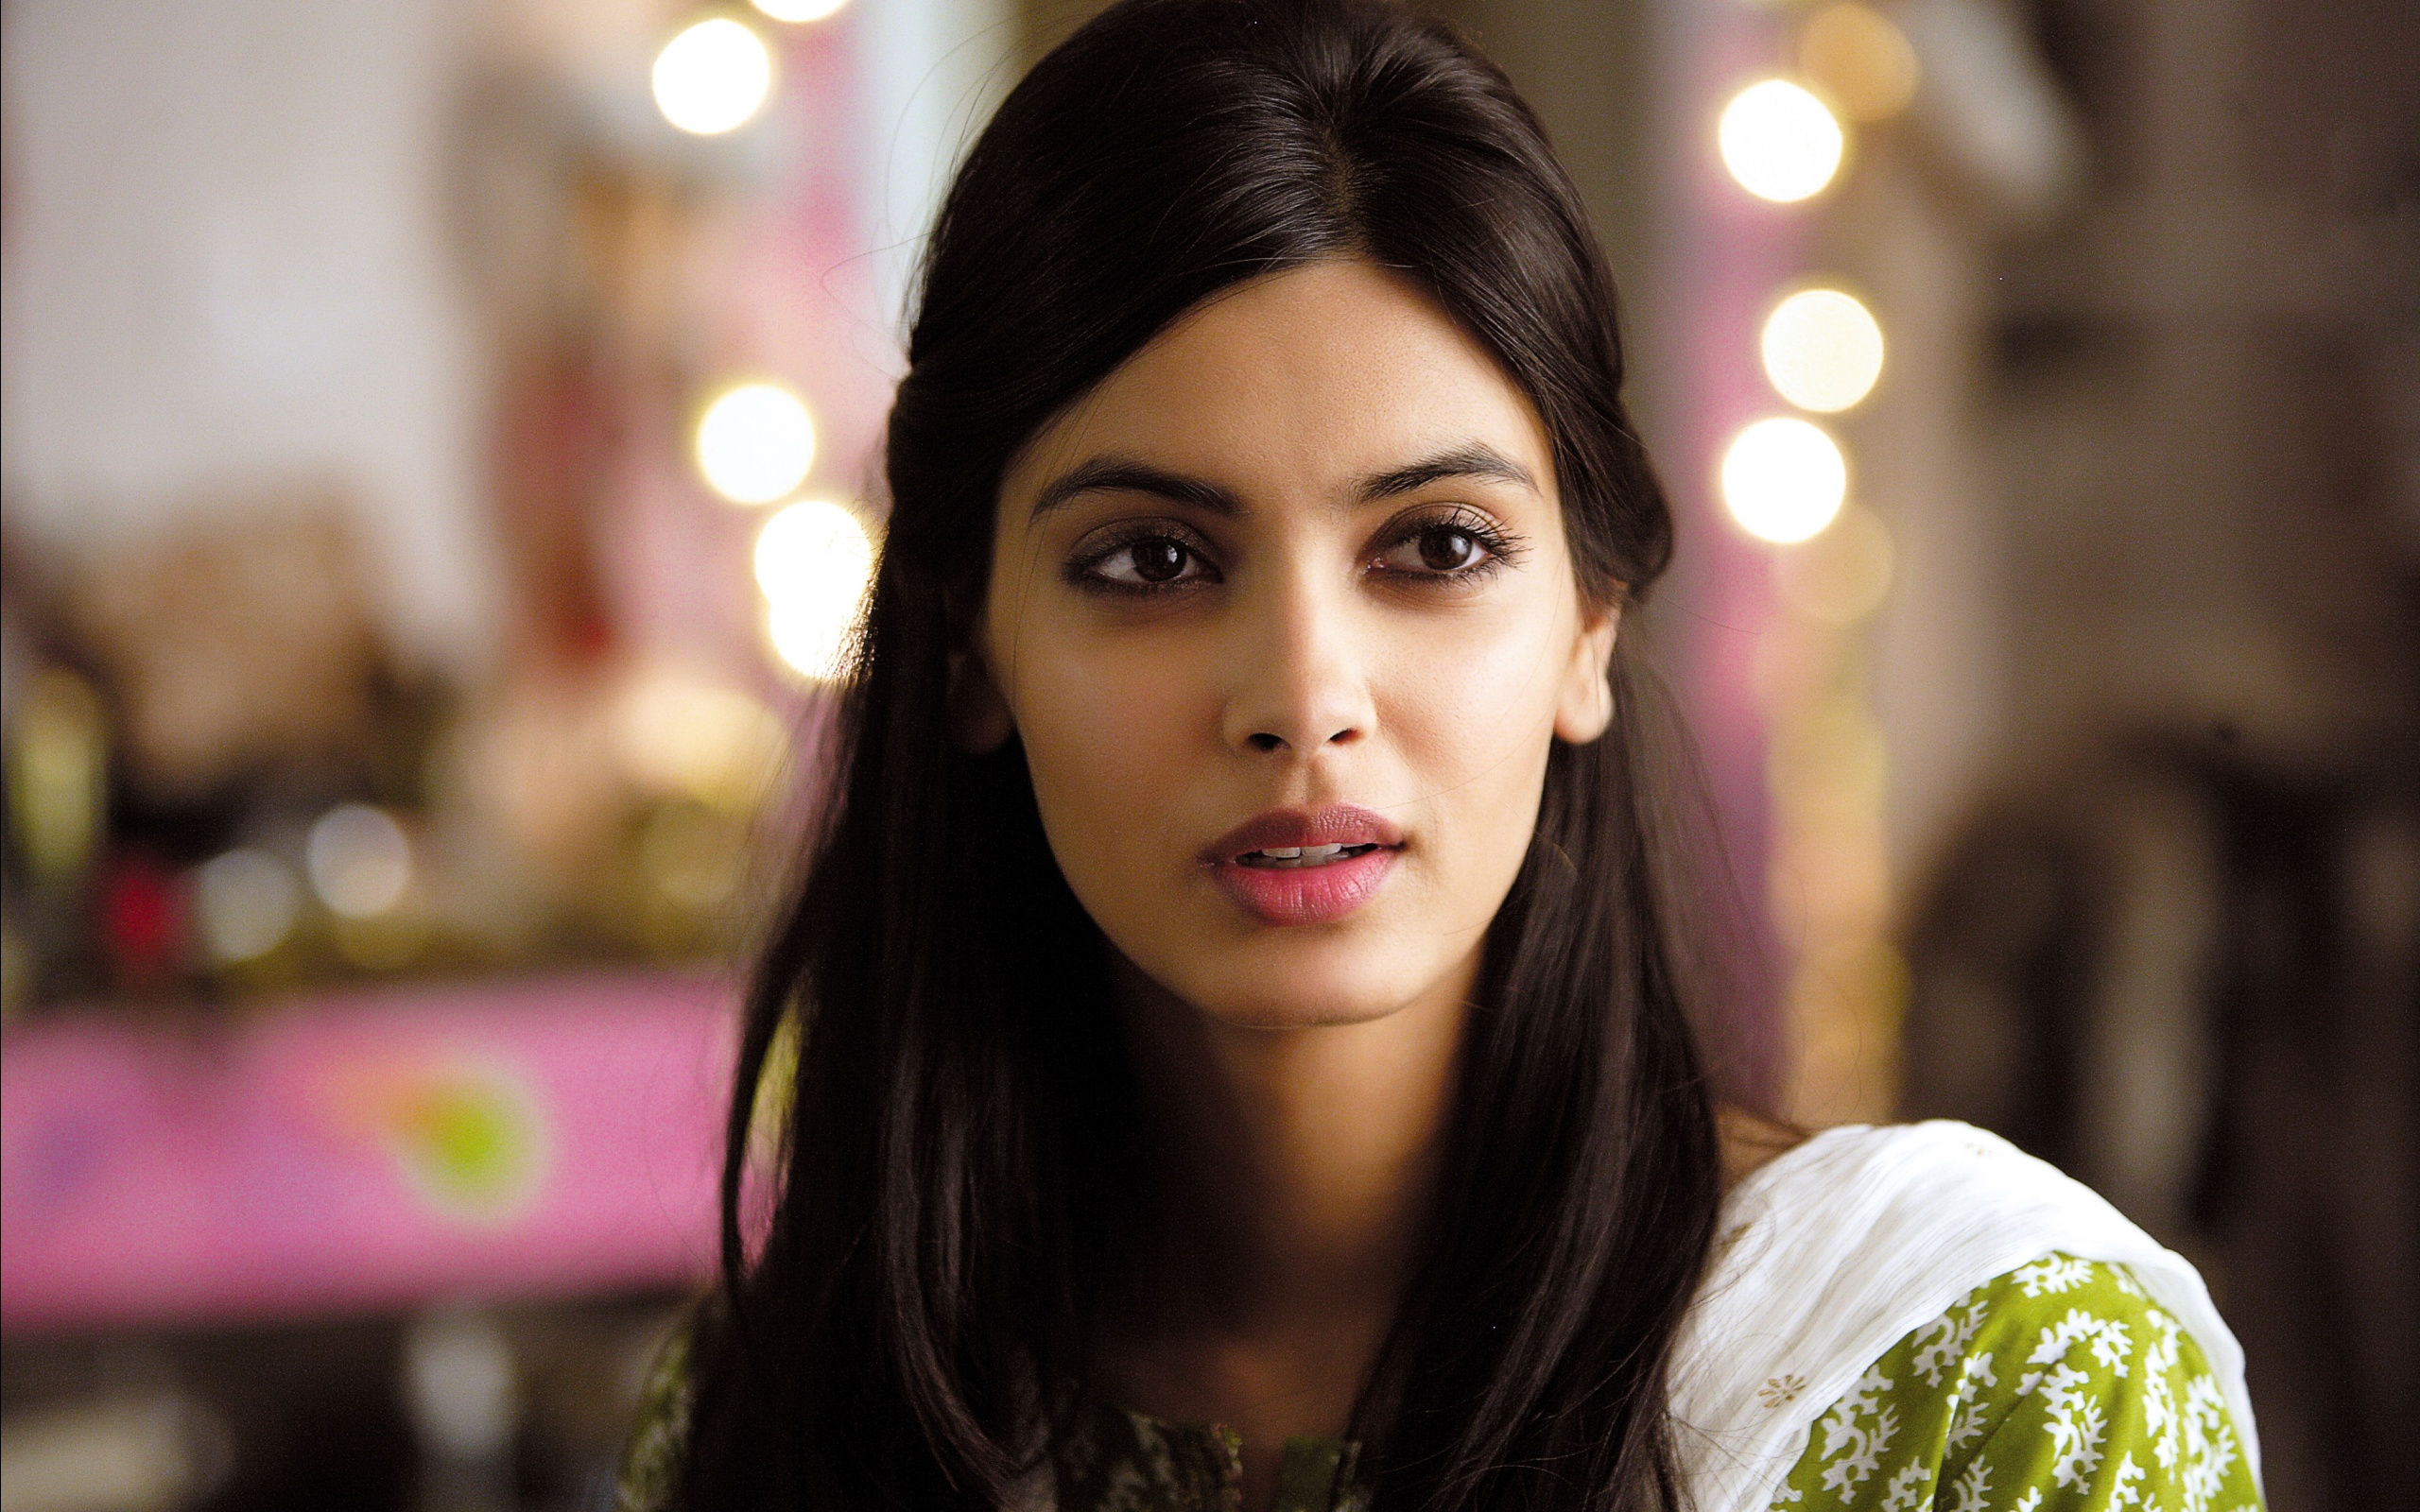 diana penty in cocktail movie wallpapers in jpg format for free download